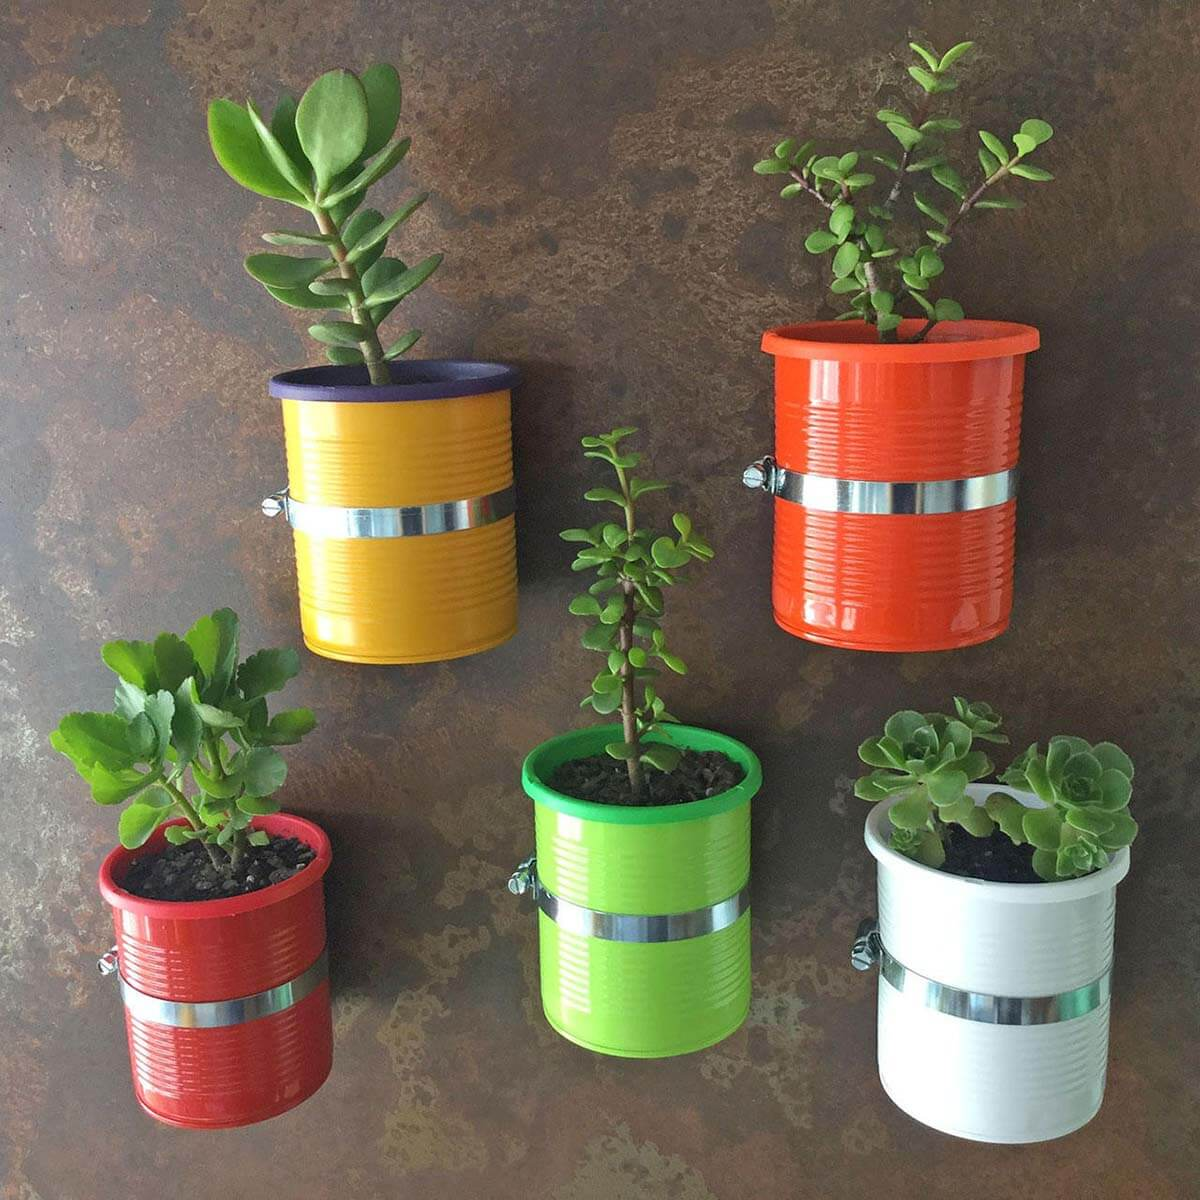 Decorative Magnetic Self-Watering Planter